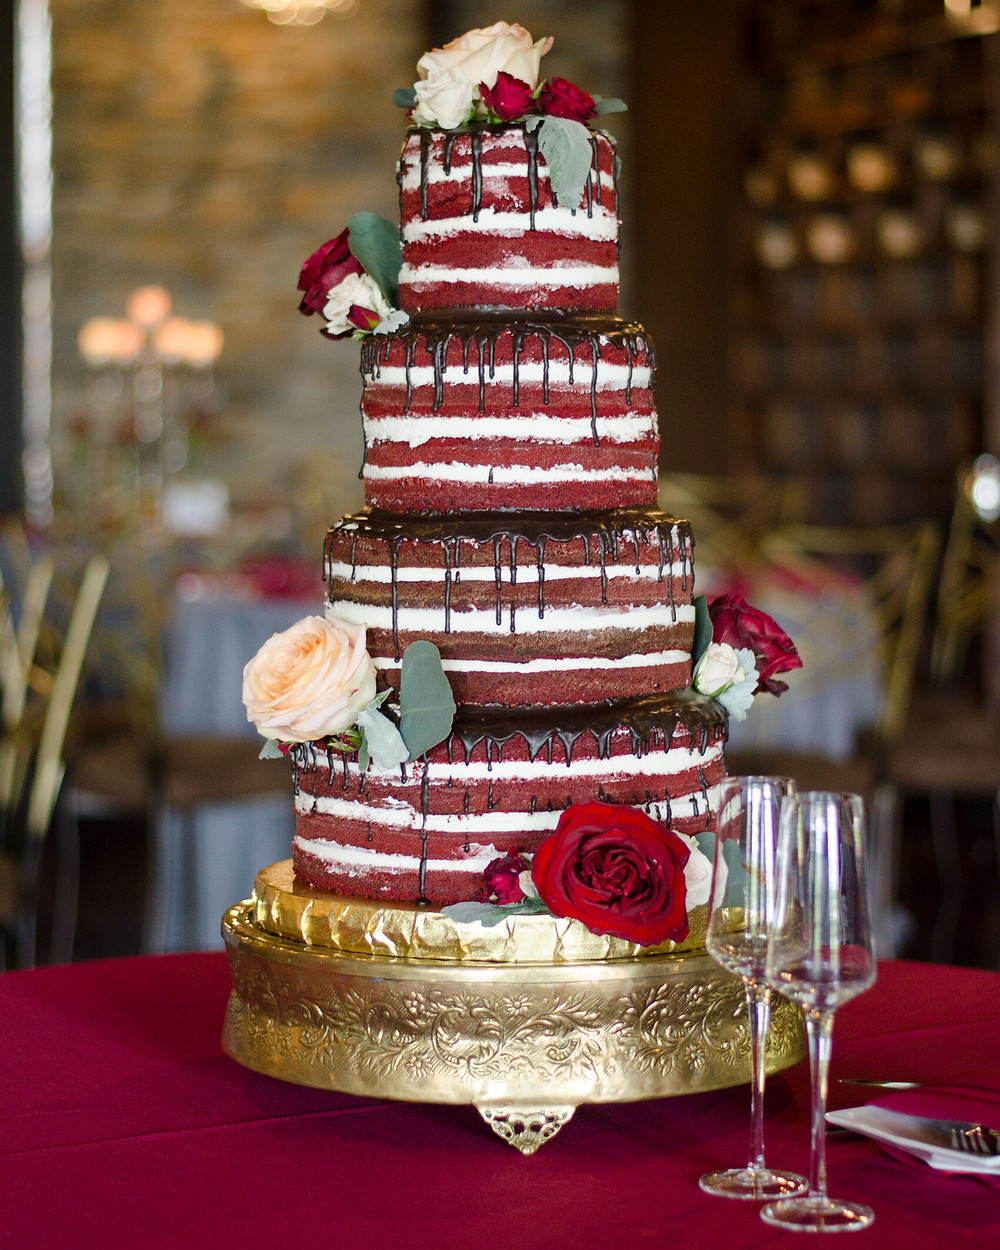 naked wedding cake CANAL 337 Wedding reception venue